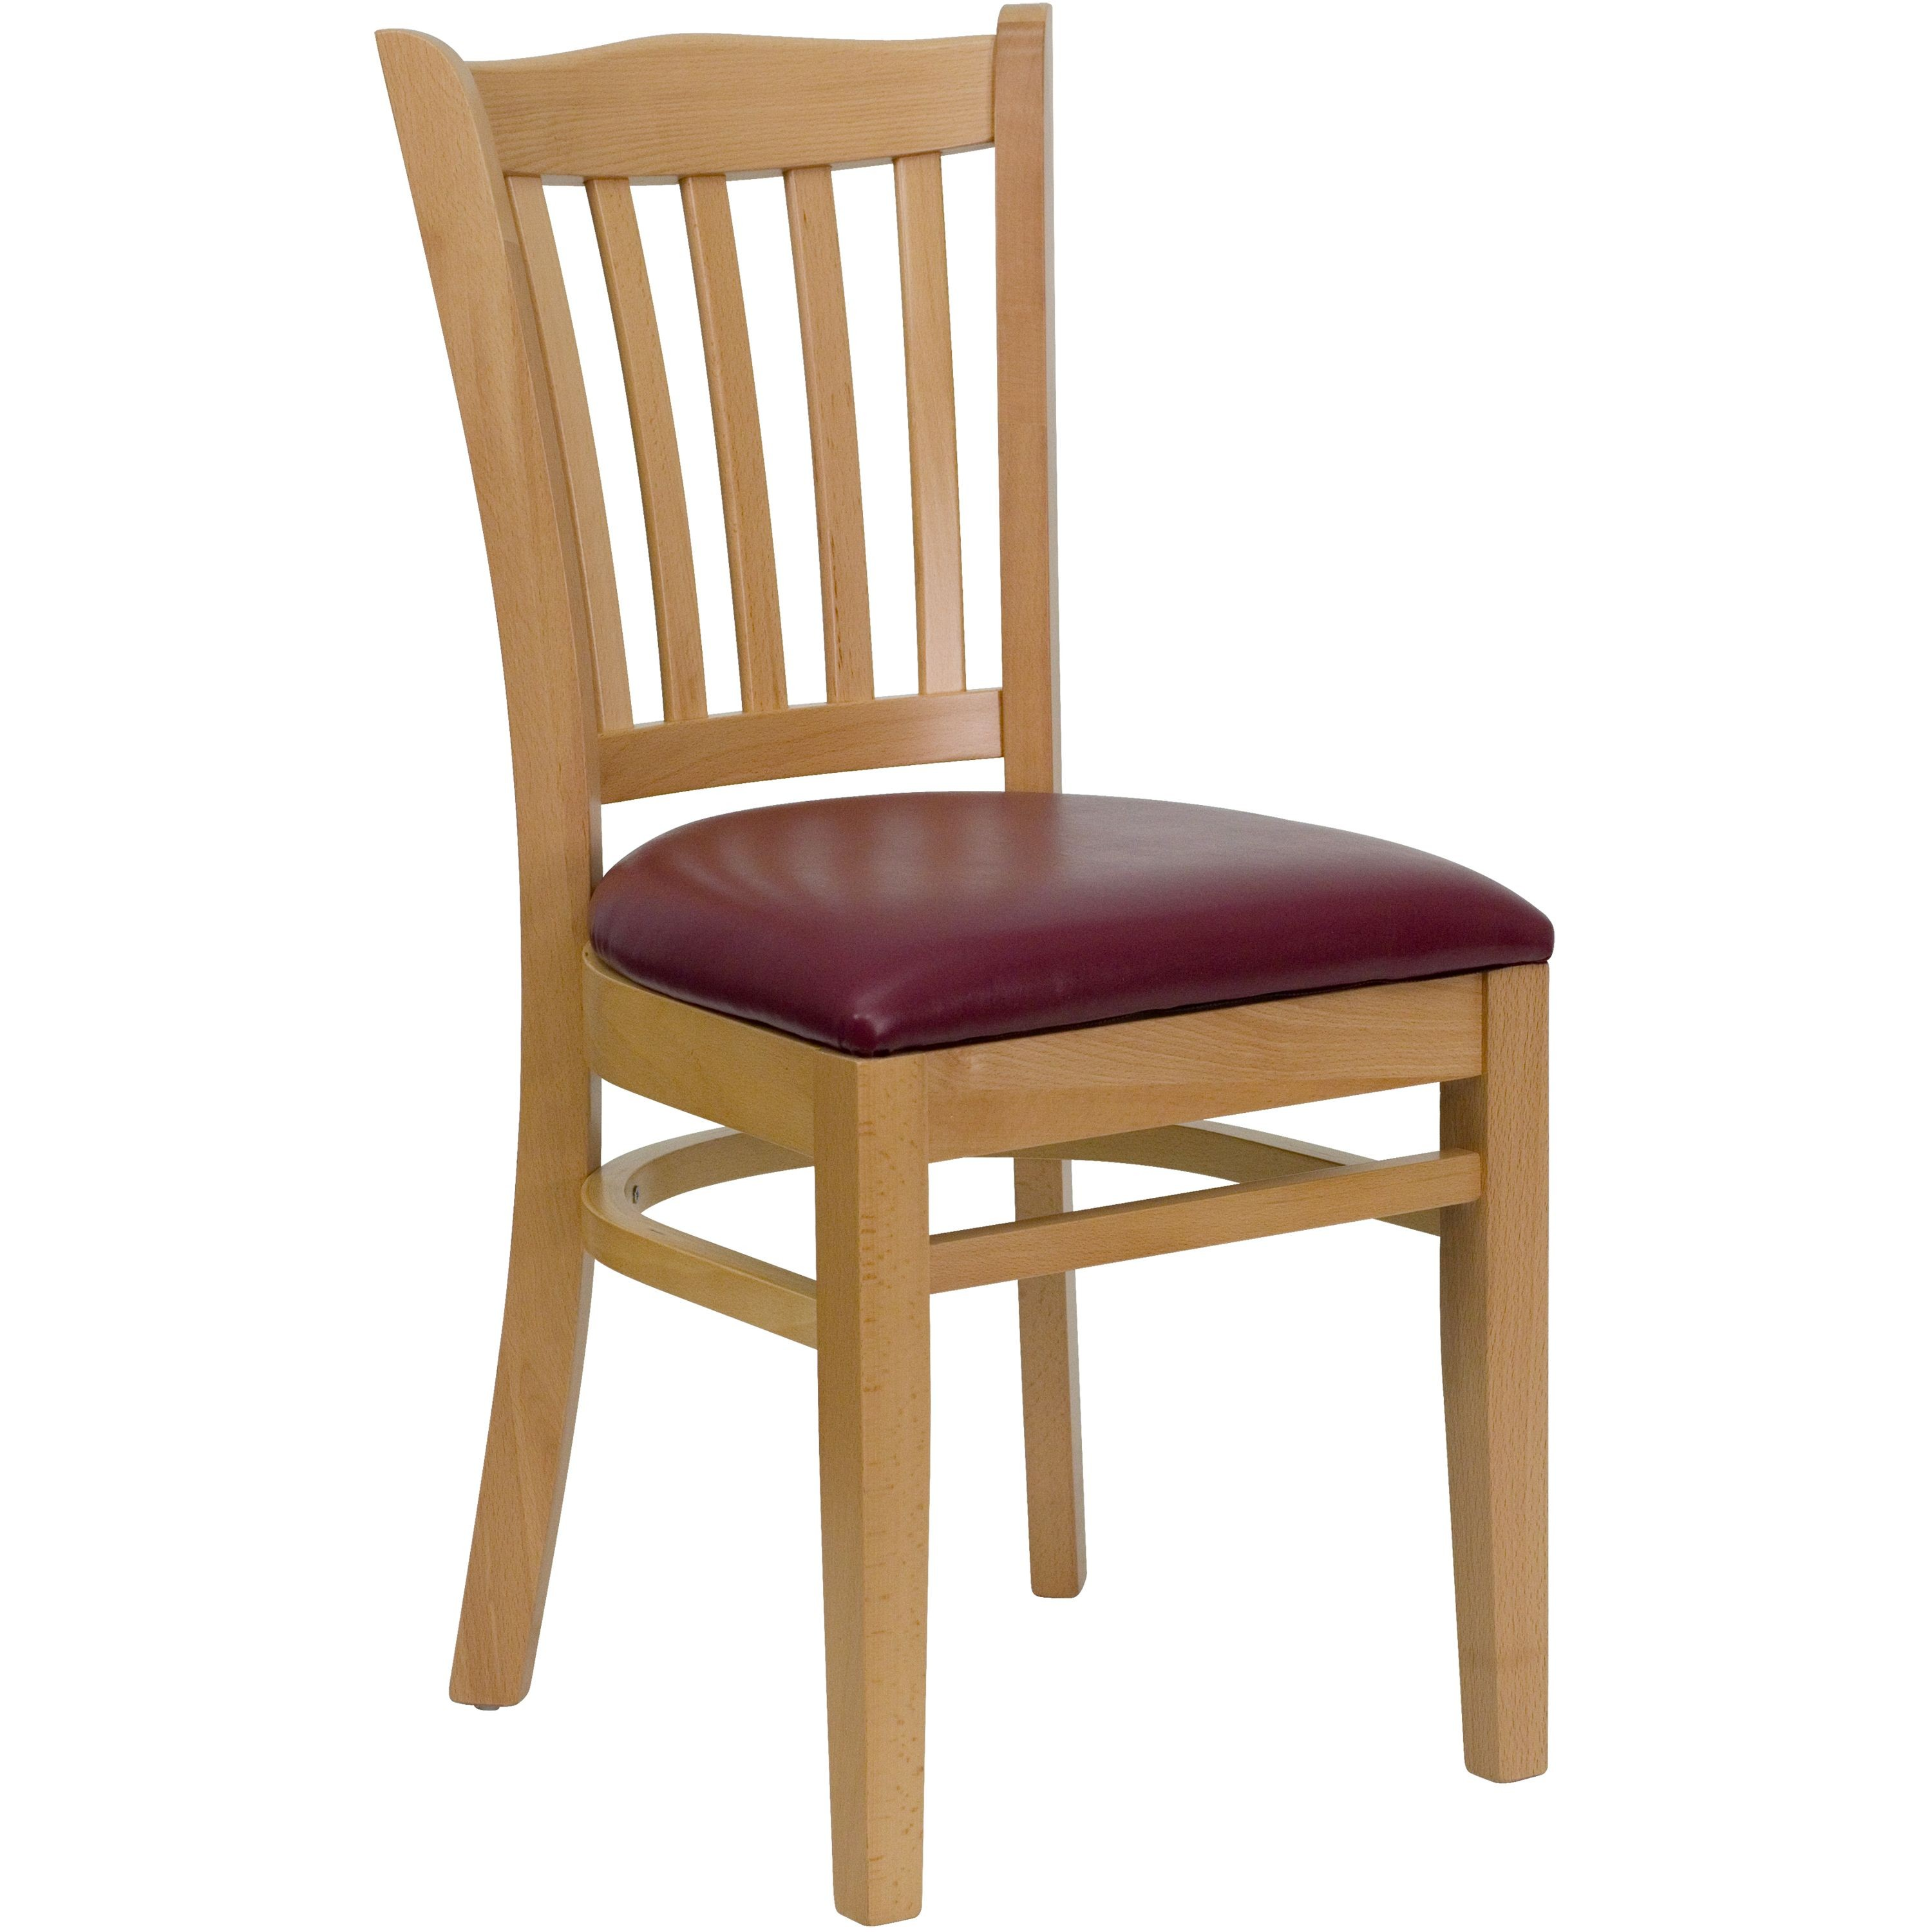 Vertical Slat Back Natural Wood Chair with Burgundy Vinyl Seat